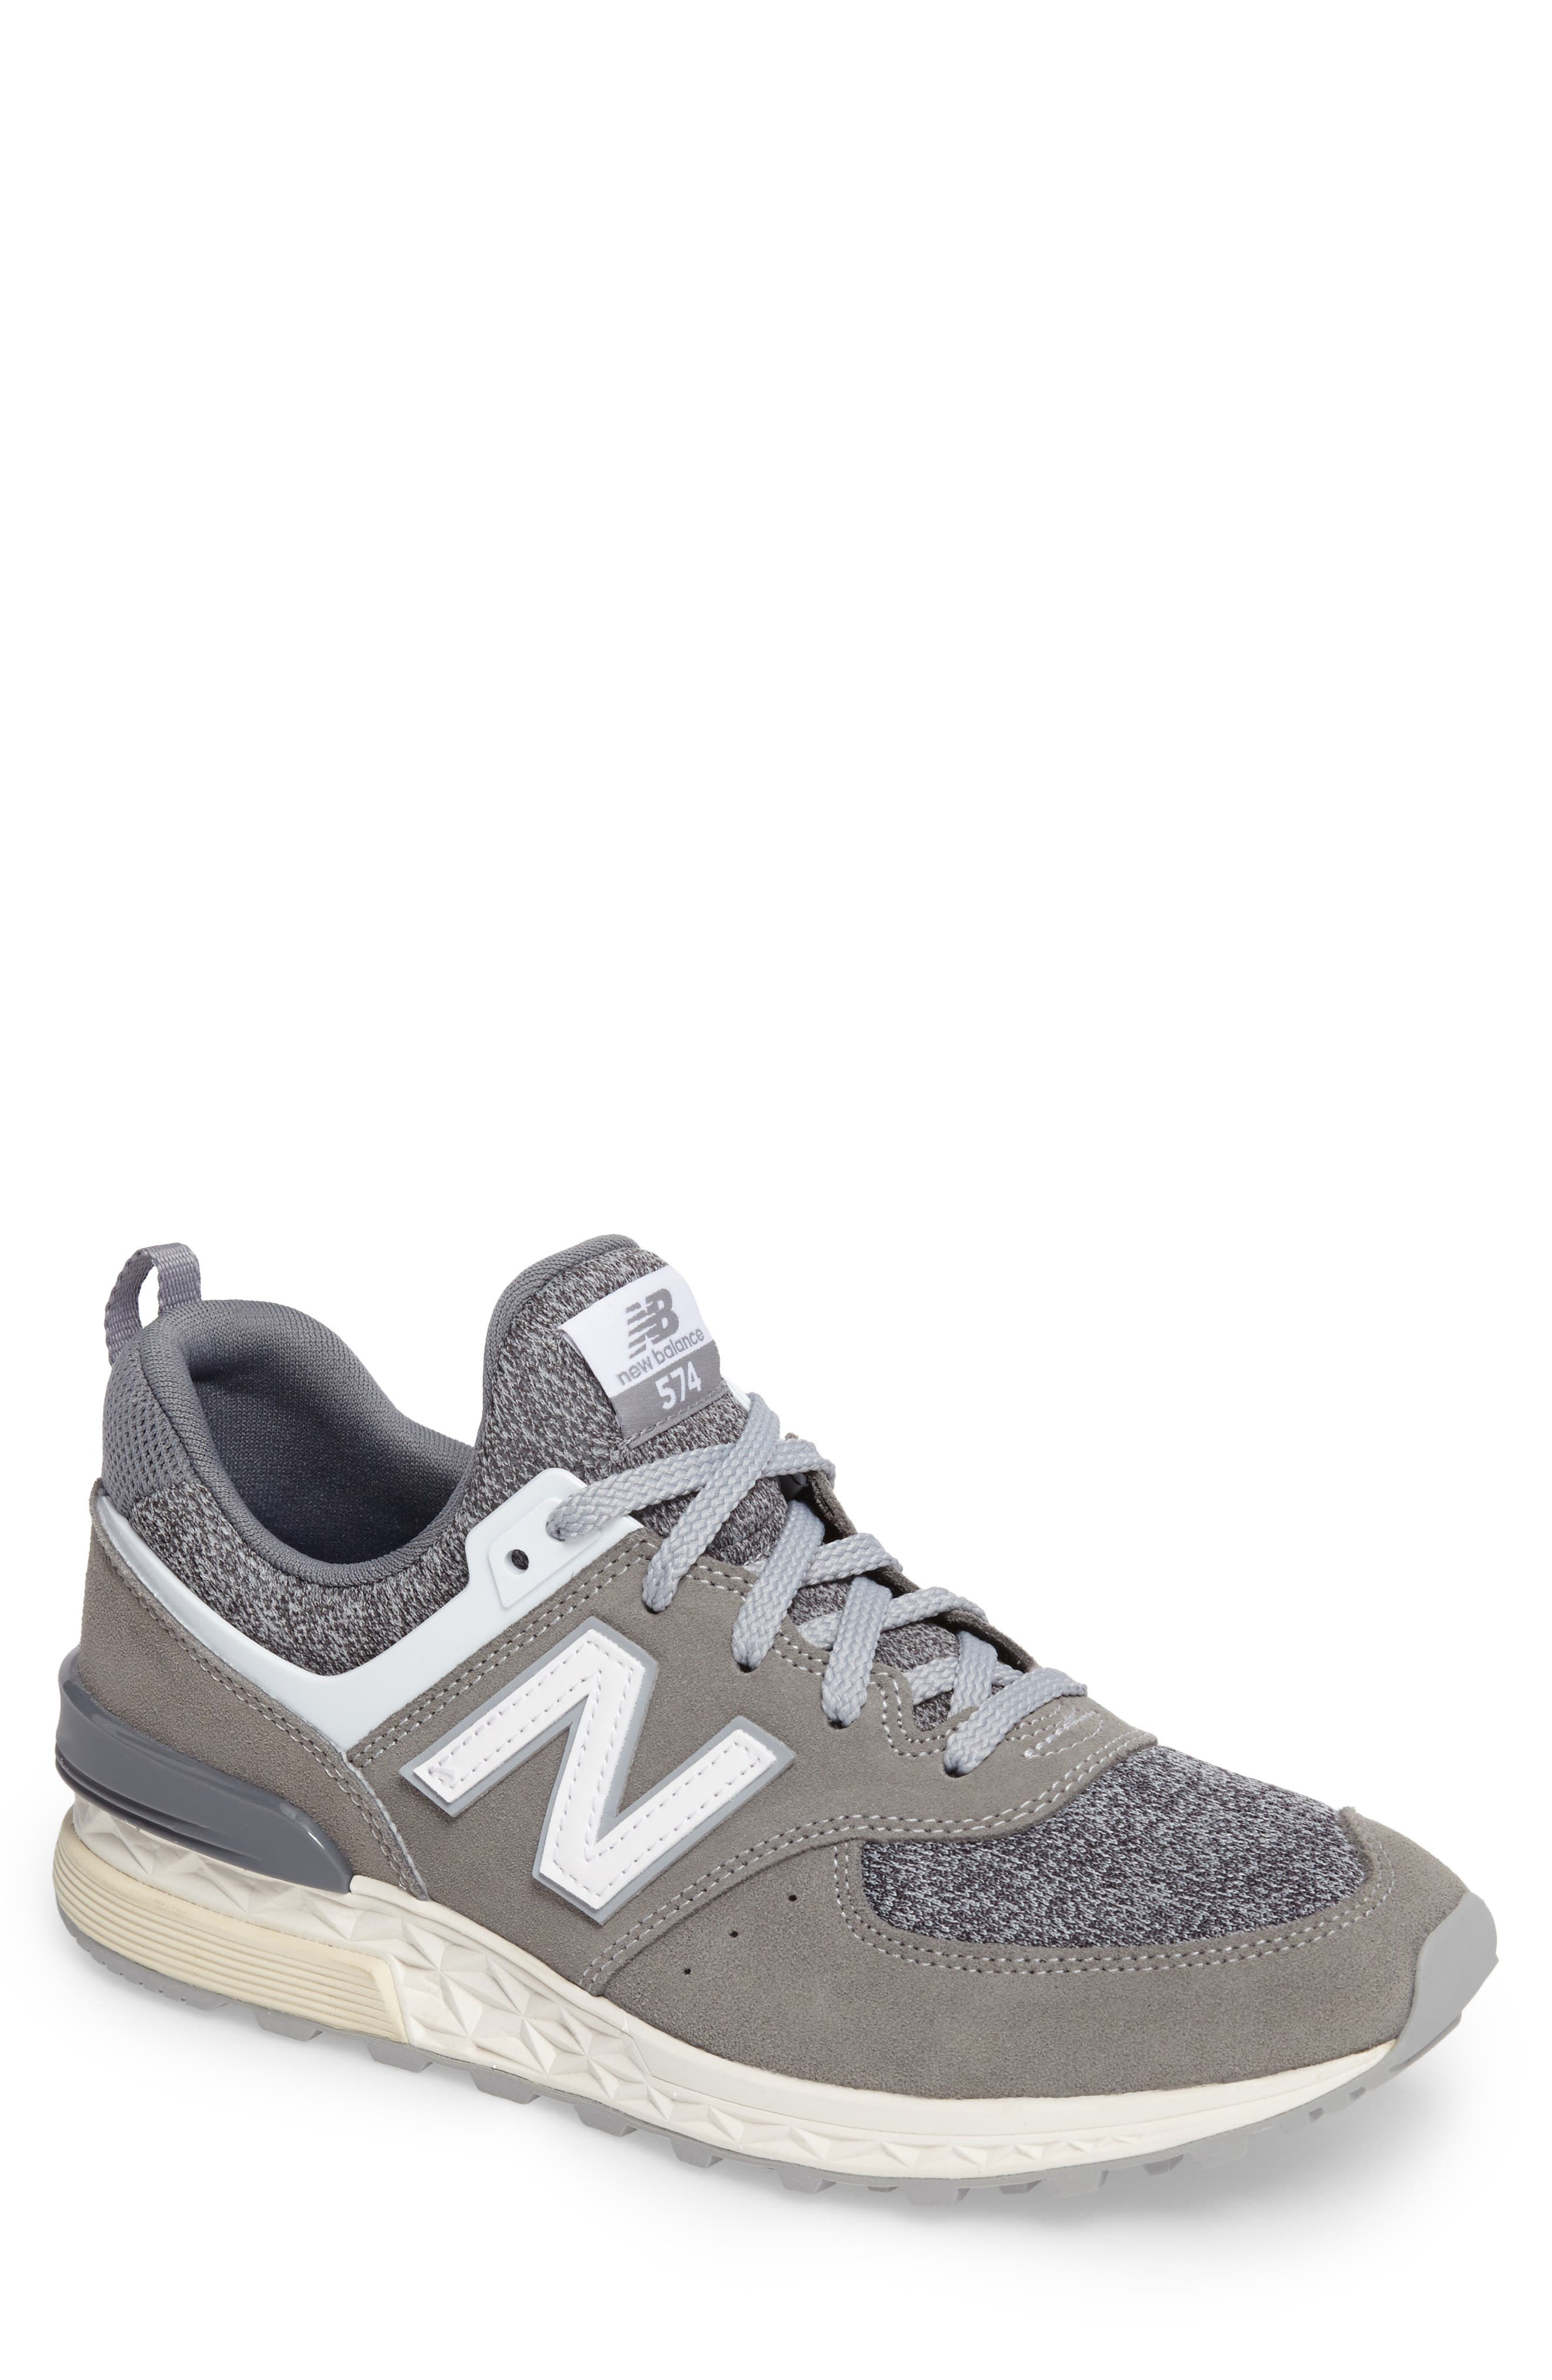 NEW BALANCE 574 Reengineered Sneaker